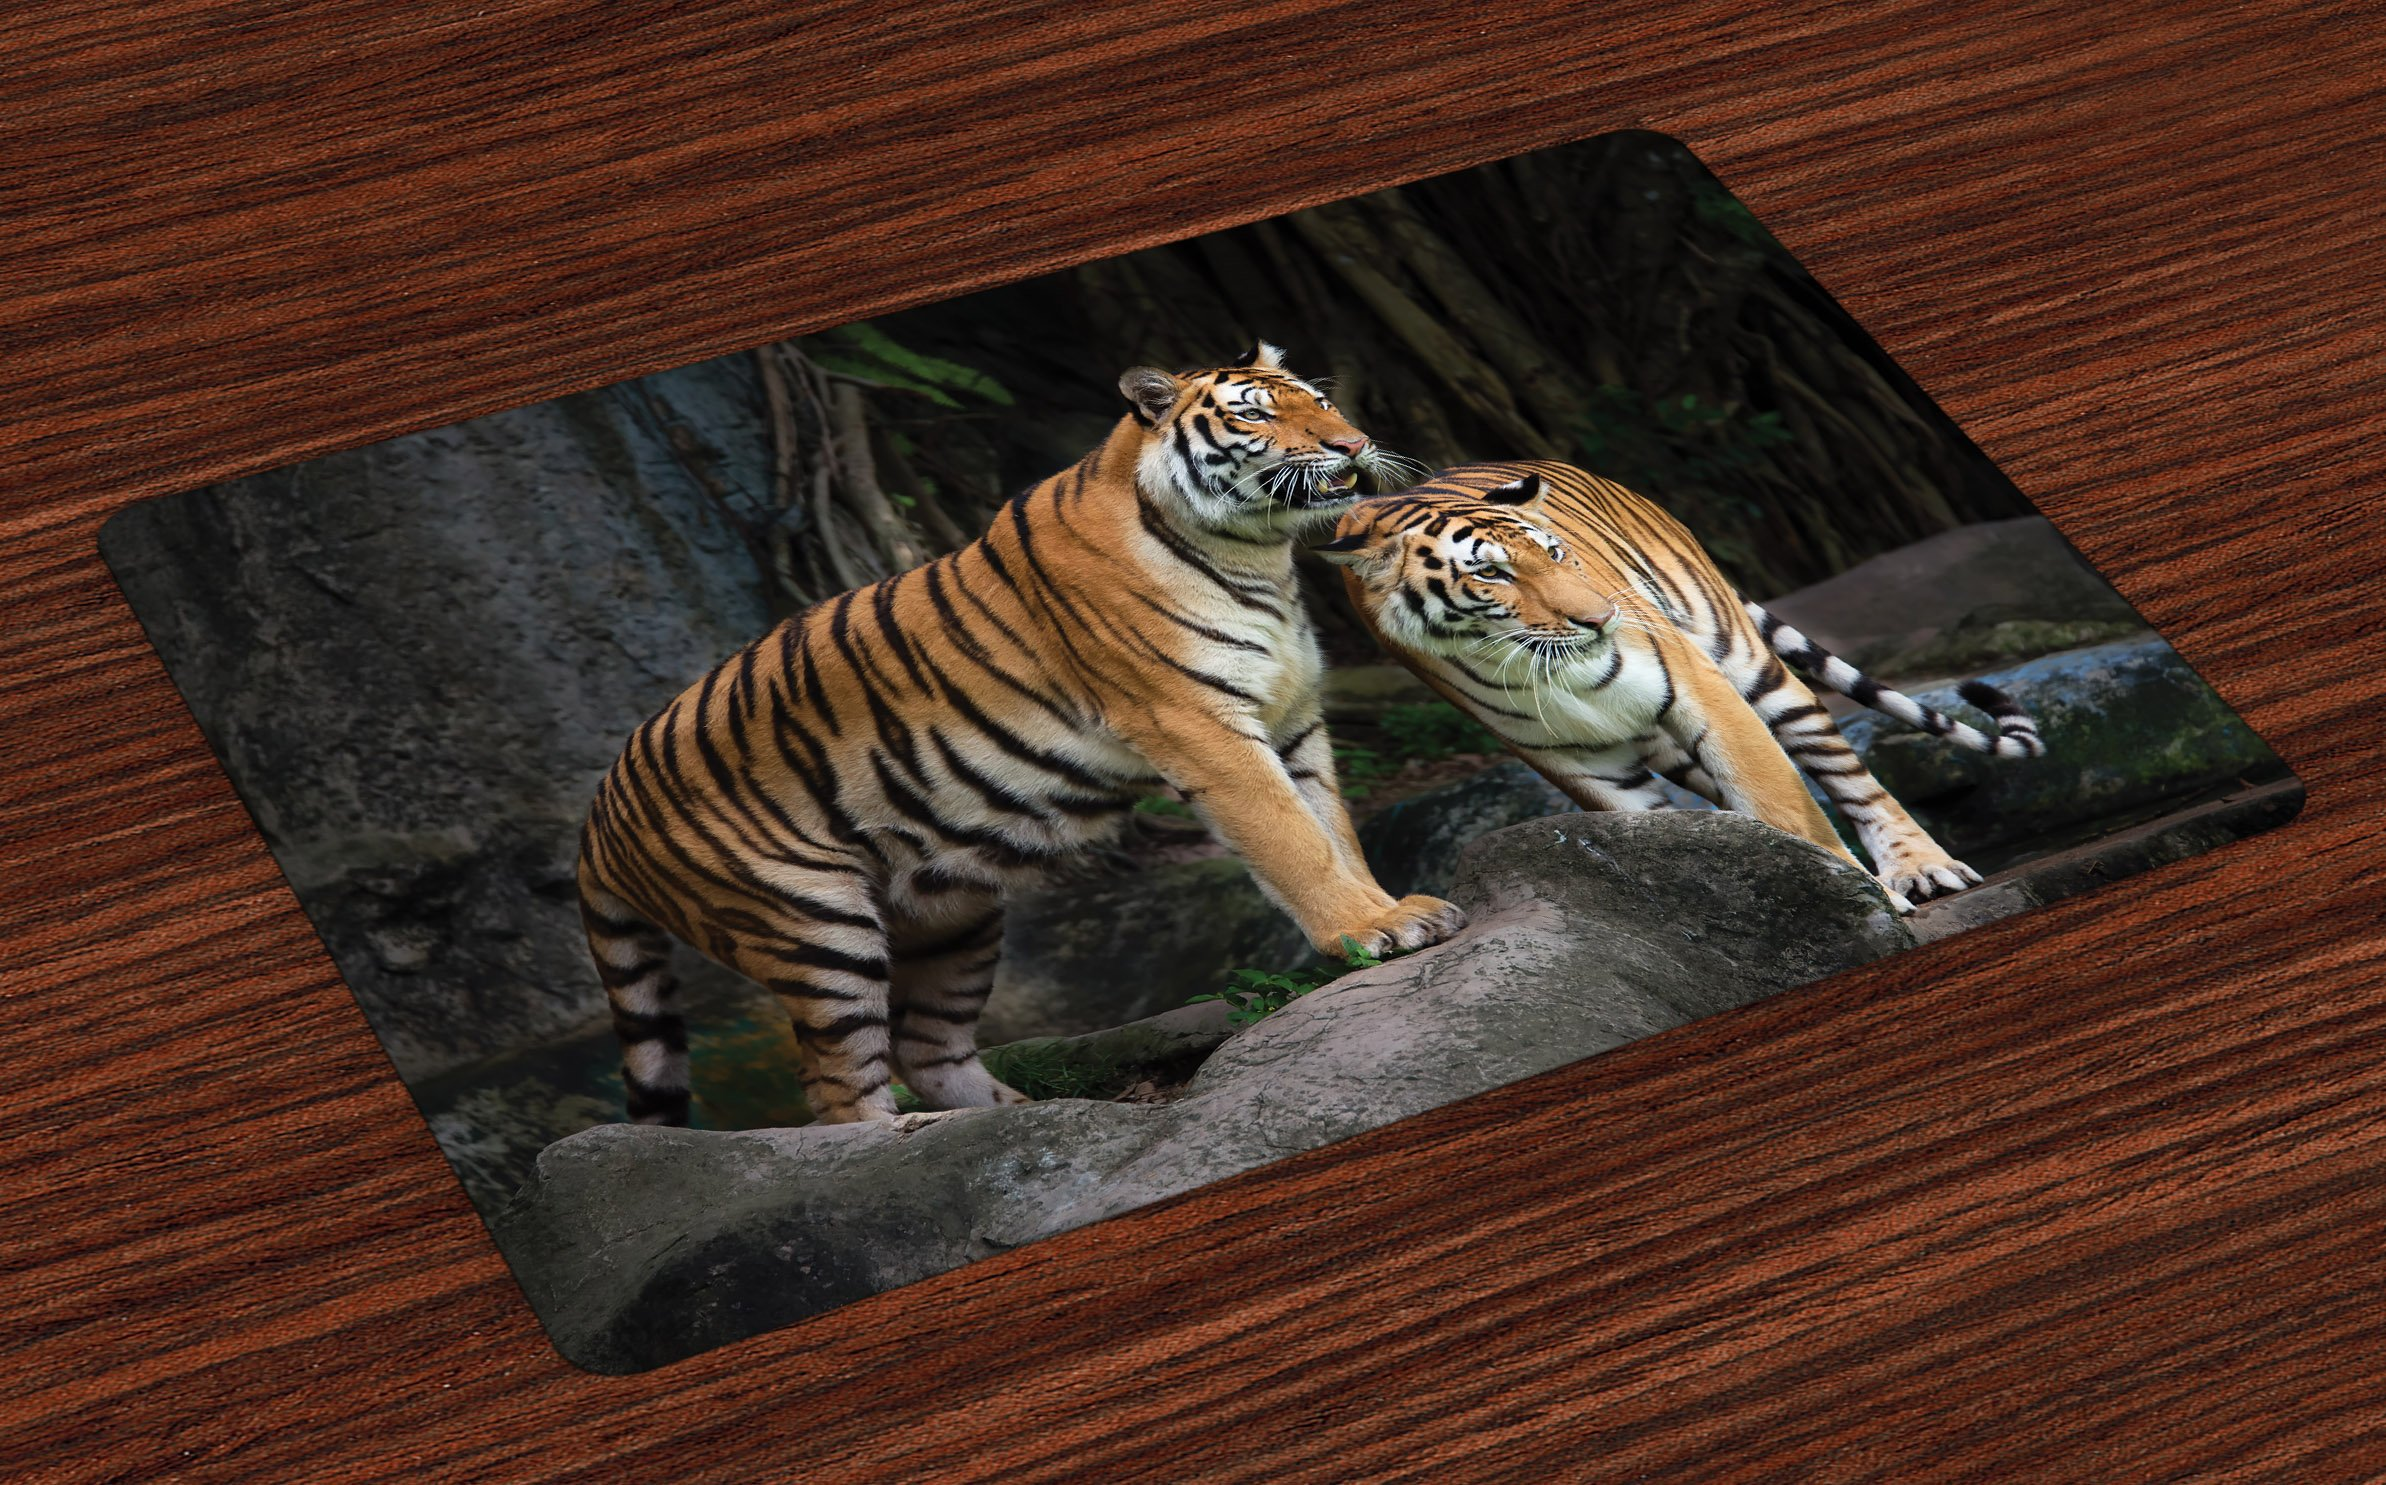 Ambesonne Animal Place Mats Set of 4, Tiger Couple in The Jungle on Big Rocks Image Wild Cats in Nature Image Print, Washable Fabric Placemats for Dining Room Kitchen Table Decor, Grey and Ginger